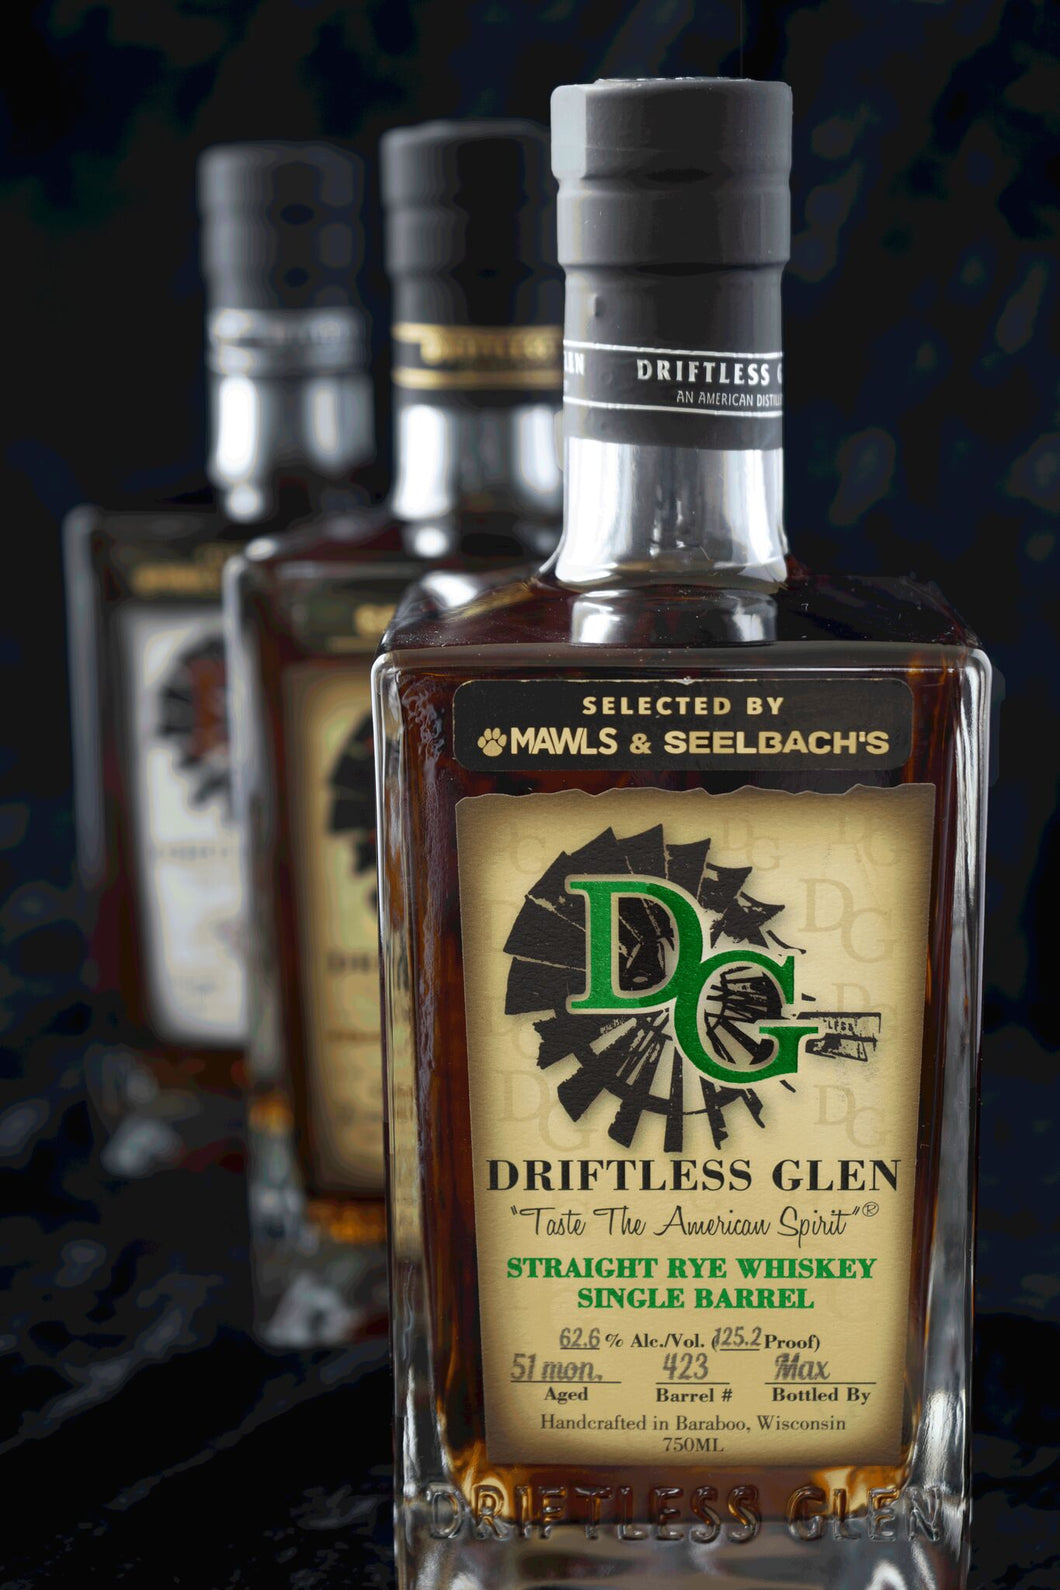 Driftless Glen Distillery MAWLS & Seelbach's Single Barrel Rye